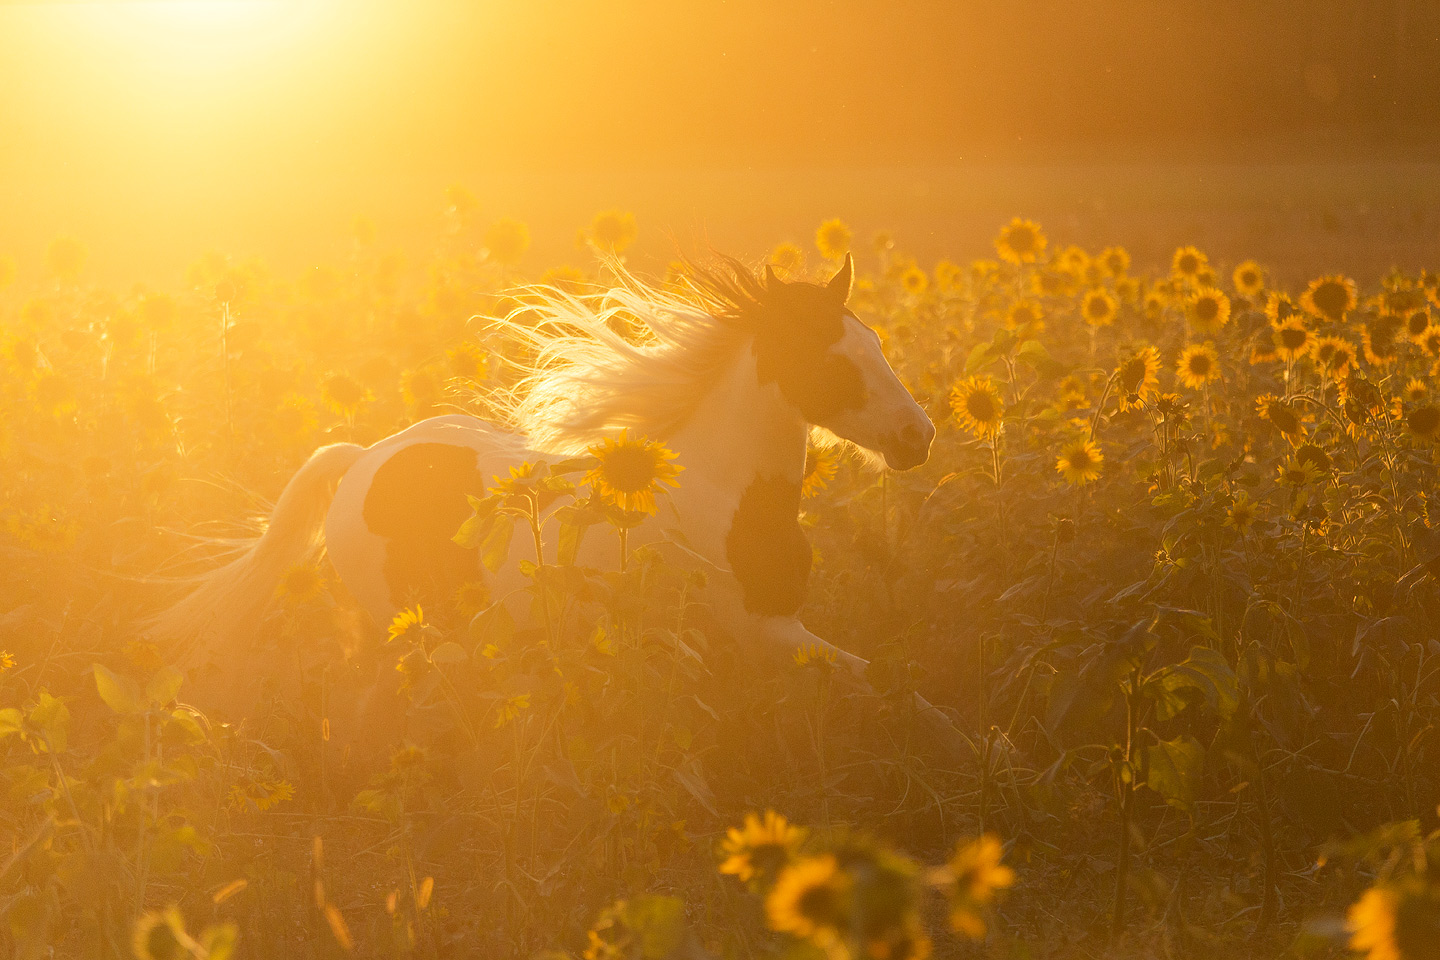 Gypsy Cob mare galloping through the sunflowers